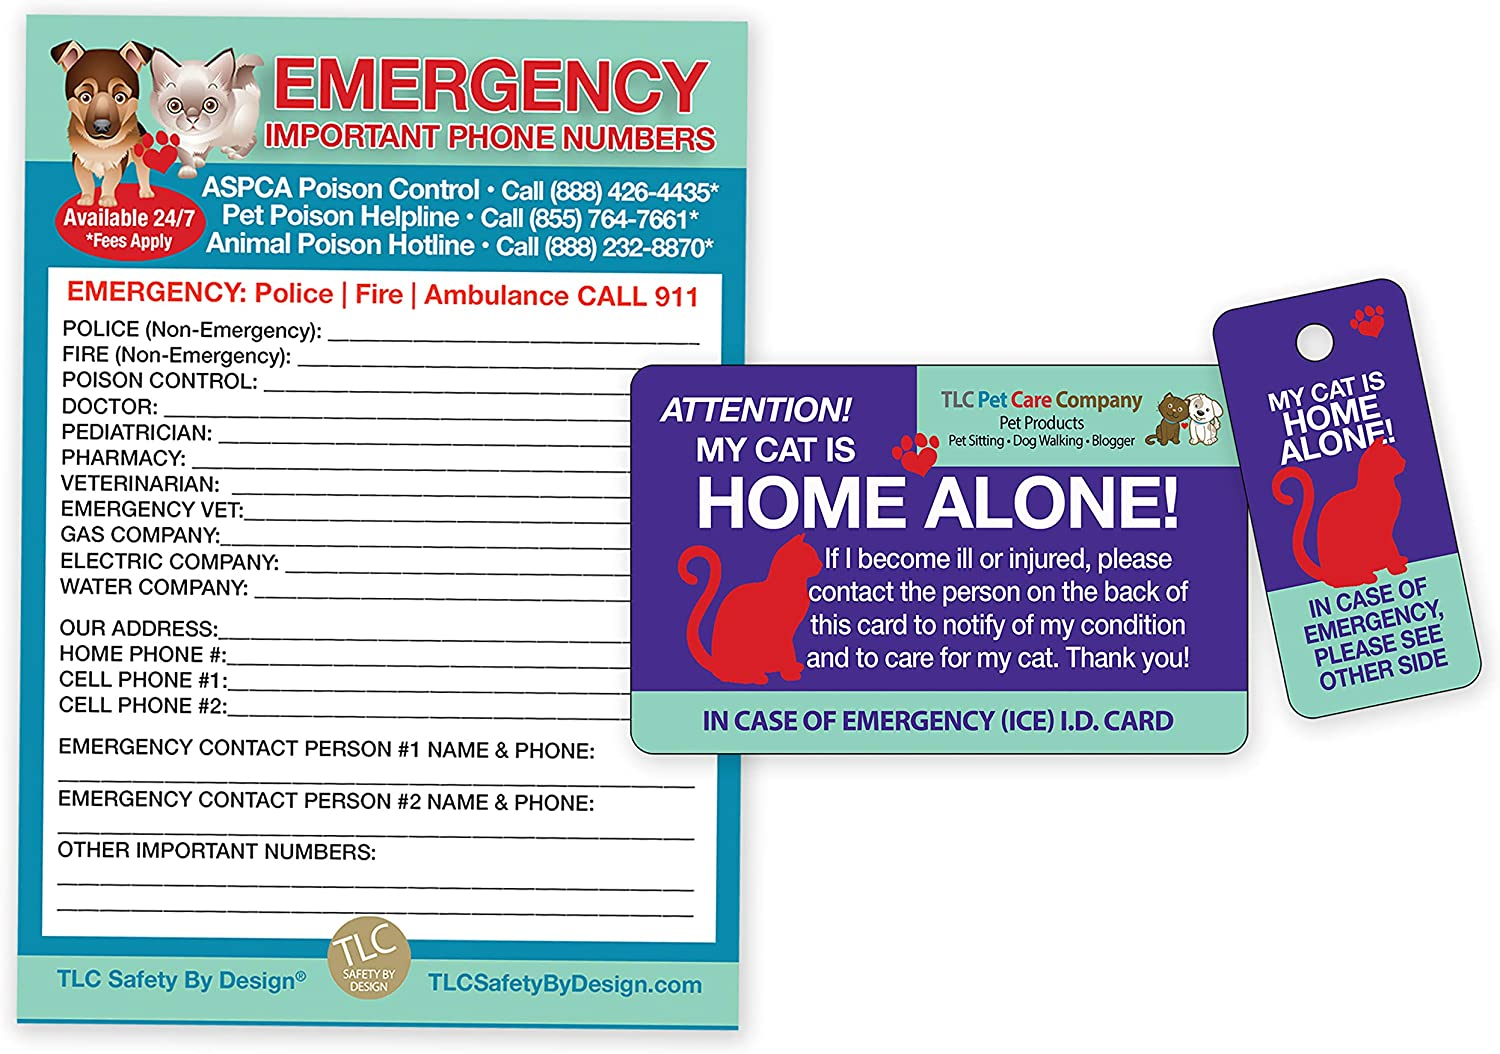 TLC Safety By Design My CAT is Home Alone Pet Alert Emergency ICE ID Plastic Wallet Card and Keytag with Emergency Contact Call Card